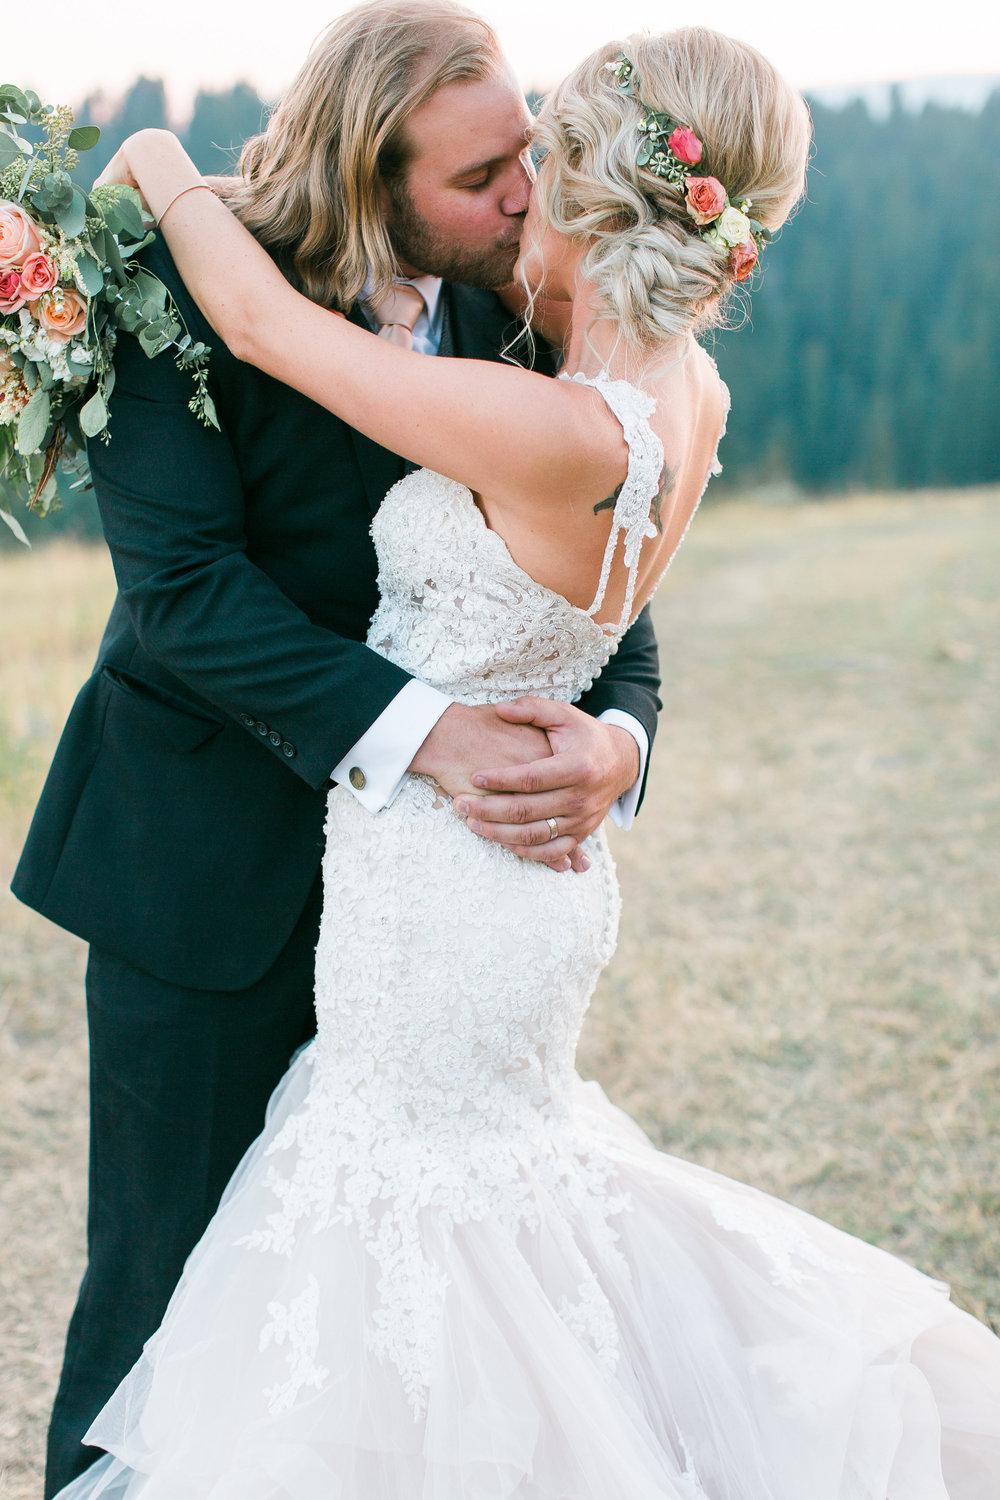 Montana wedding boho bride on mountain kissing groom Minnesota wedding photography Mallory Kiesow Photography